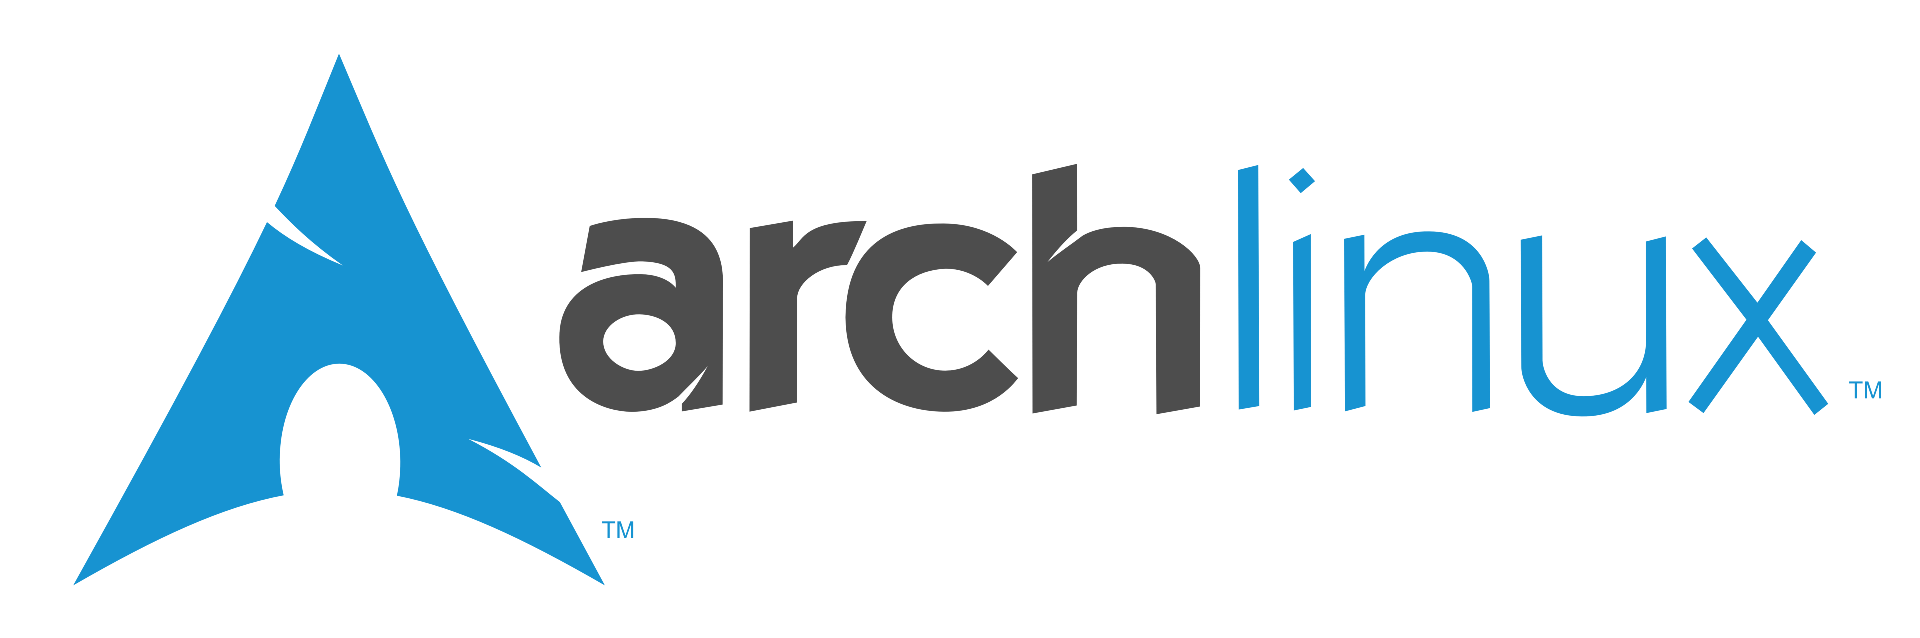 How To Install Grub2 Arch Linux Logo In Terminal